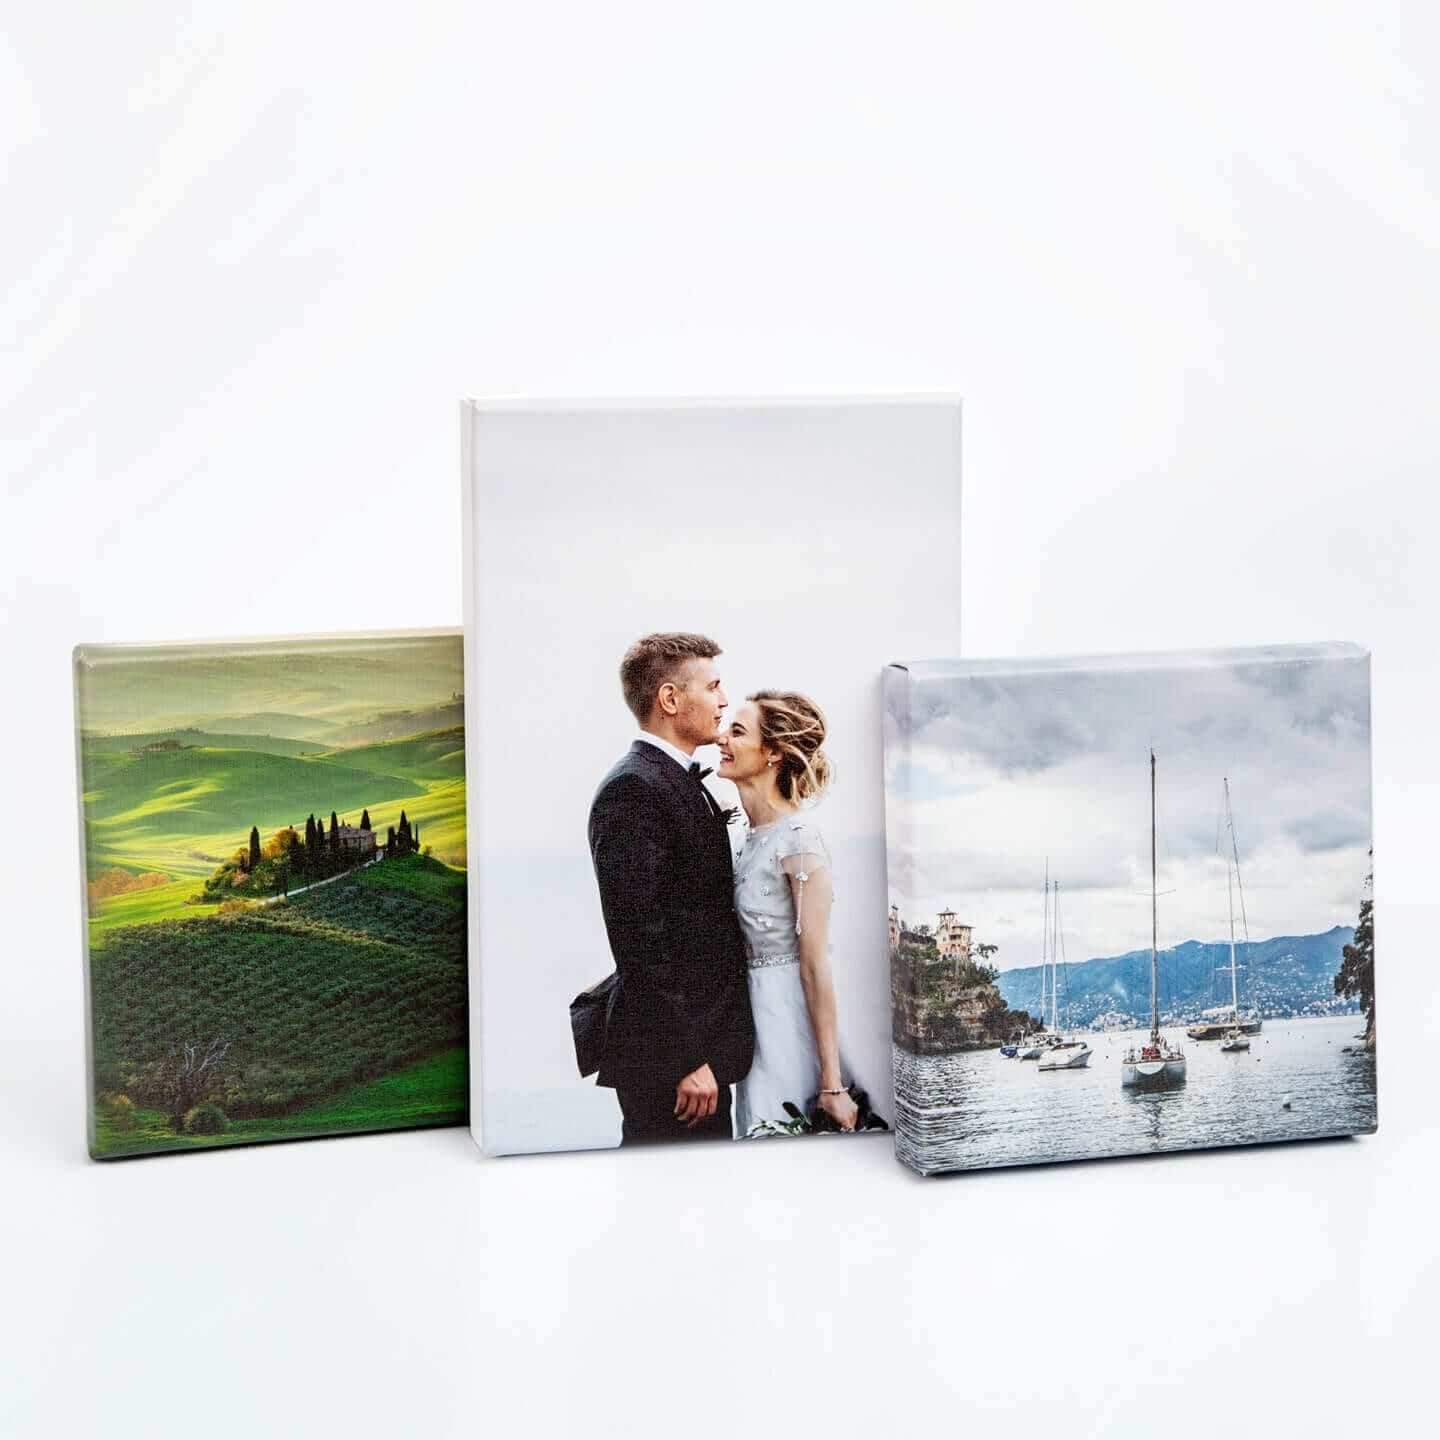 Printique: 40% off 11x14: Canvas Prints: $28 + s/h or 2 for $56 + free s/h